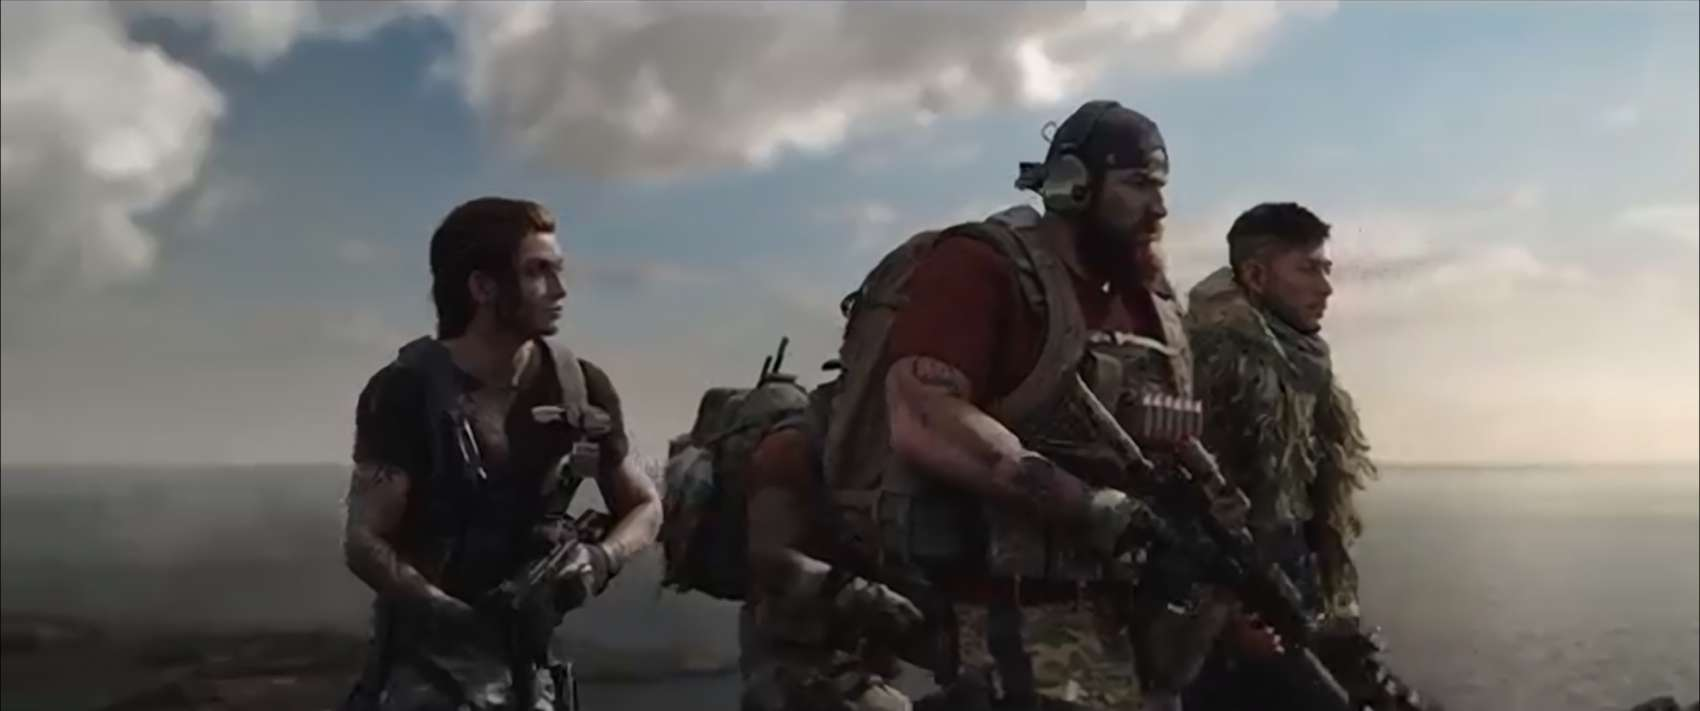 Google Stadia Is Getting Ghost Recon Breakpoint As A Launch Title; Will Release This Year